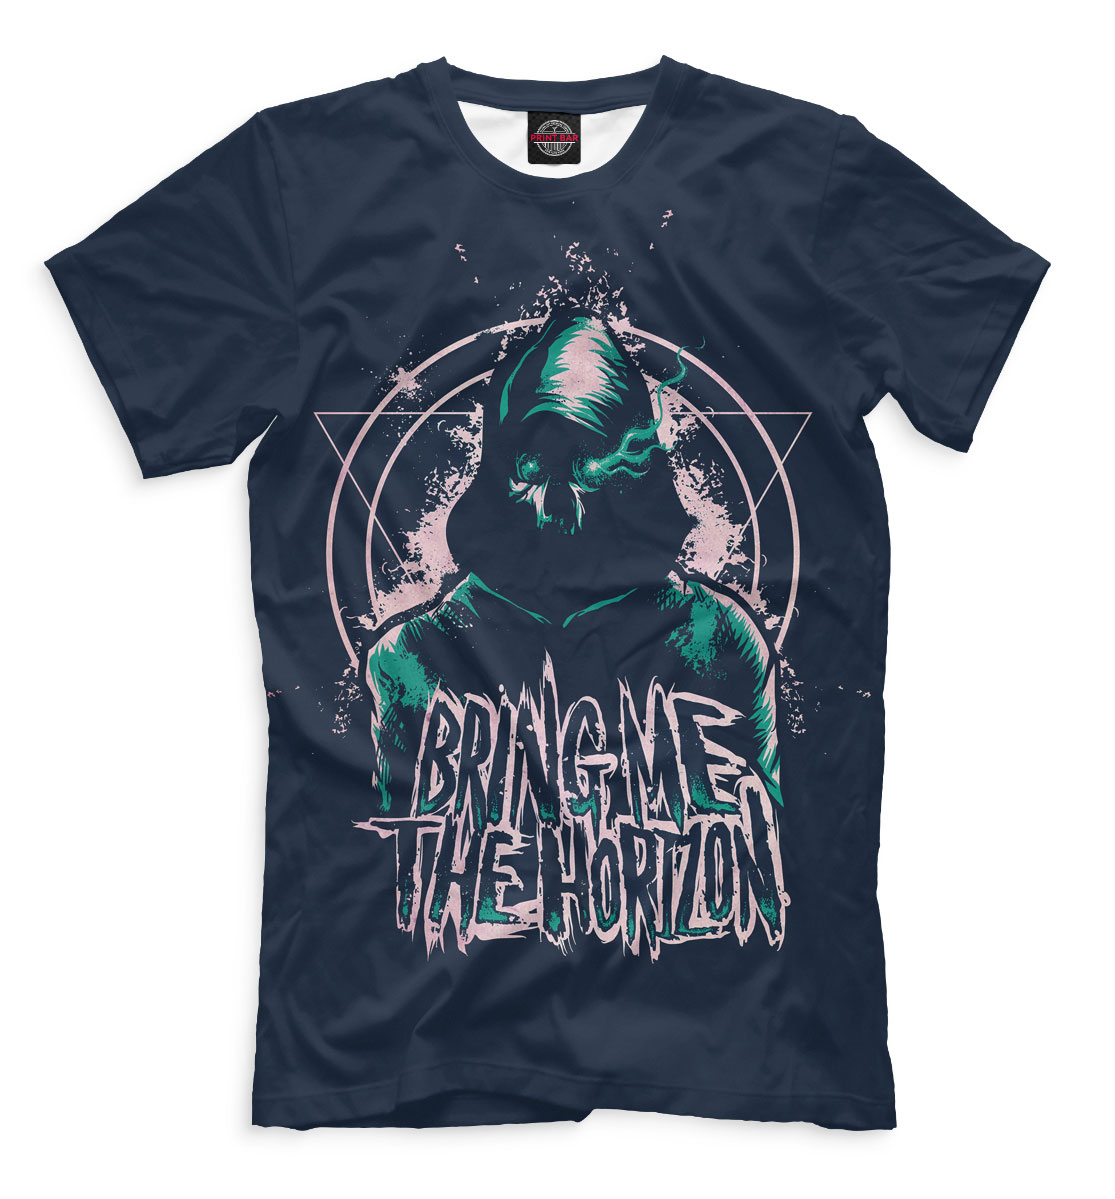 Купить Bring Me the Horizon, Printbar, Футболки, BRI-388850-fut-2